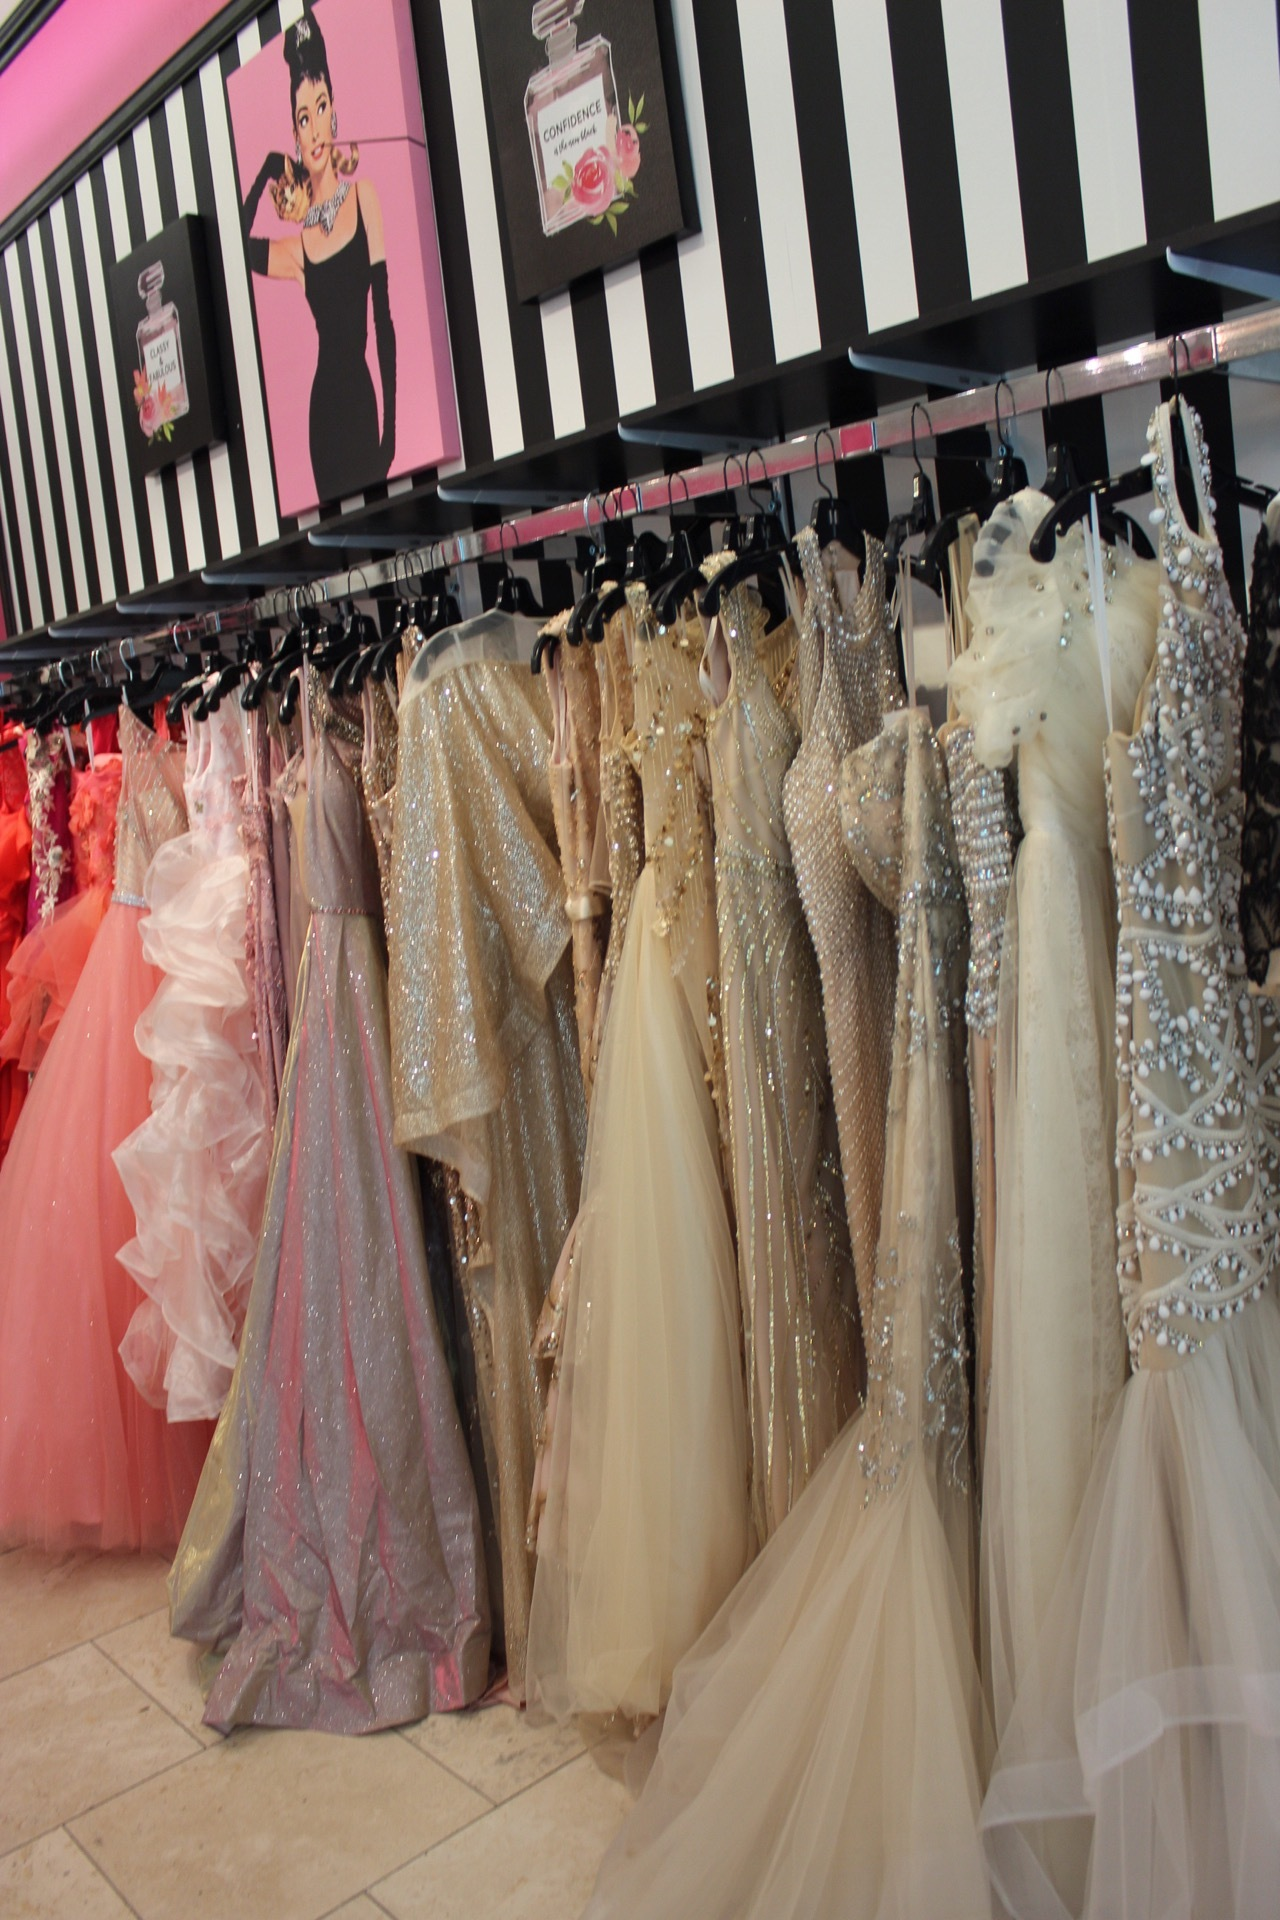 We carry a large array of dresses that will work for many different occasions from pageants to proms and more!